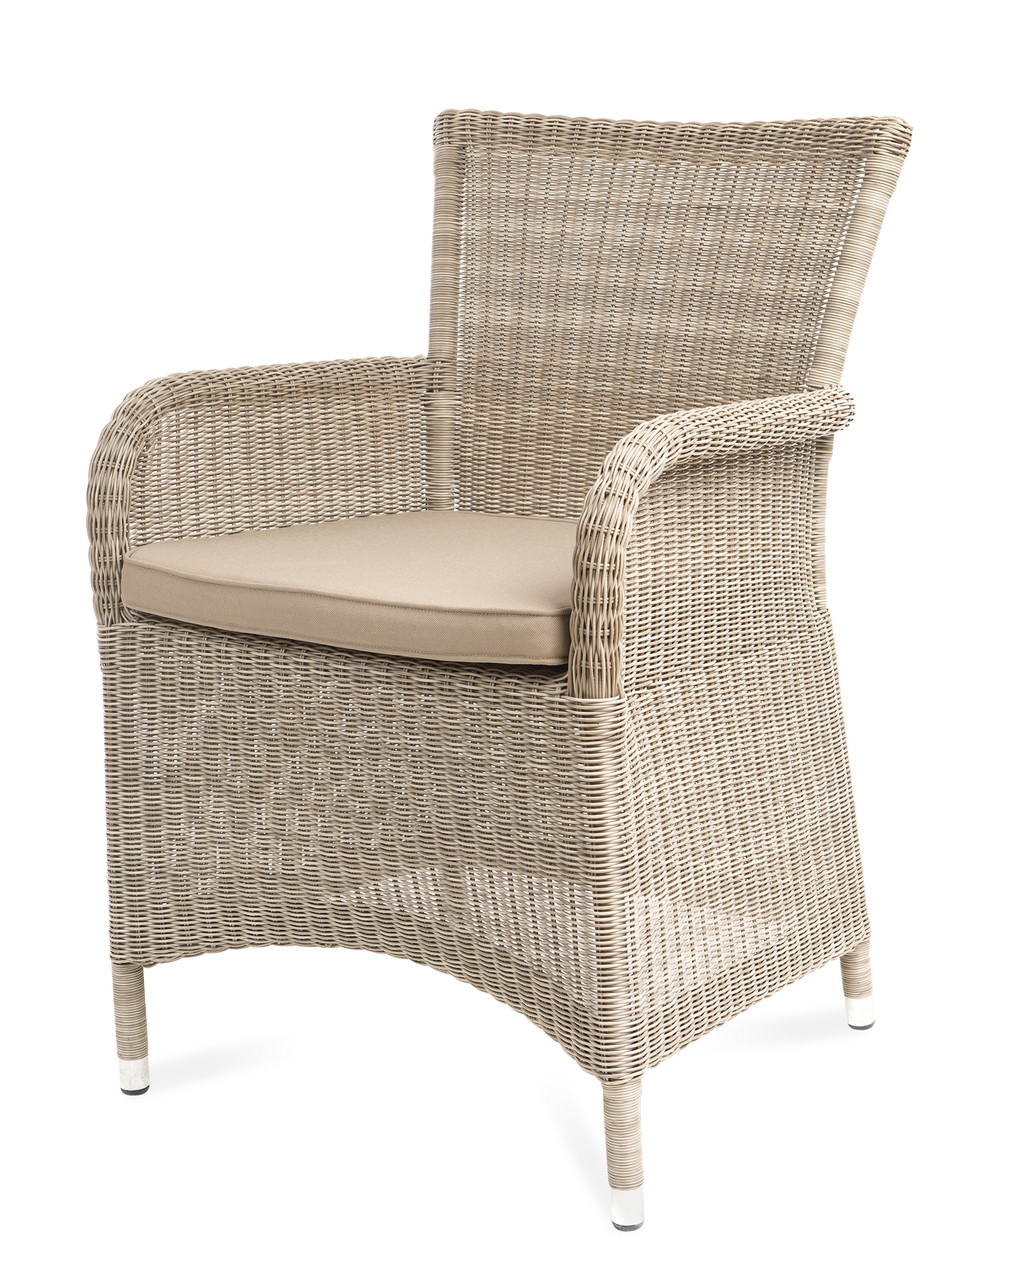 Outdoor Wicker Dining Chairs Savannah White Coral Wicker Dining Chair W Taupe Cushion Set Of 2